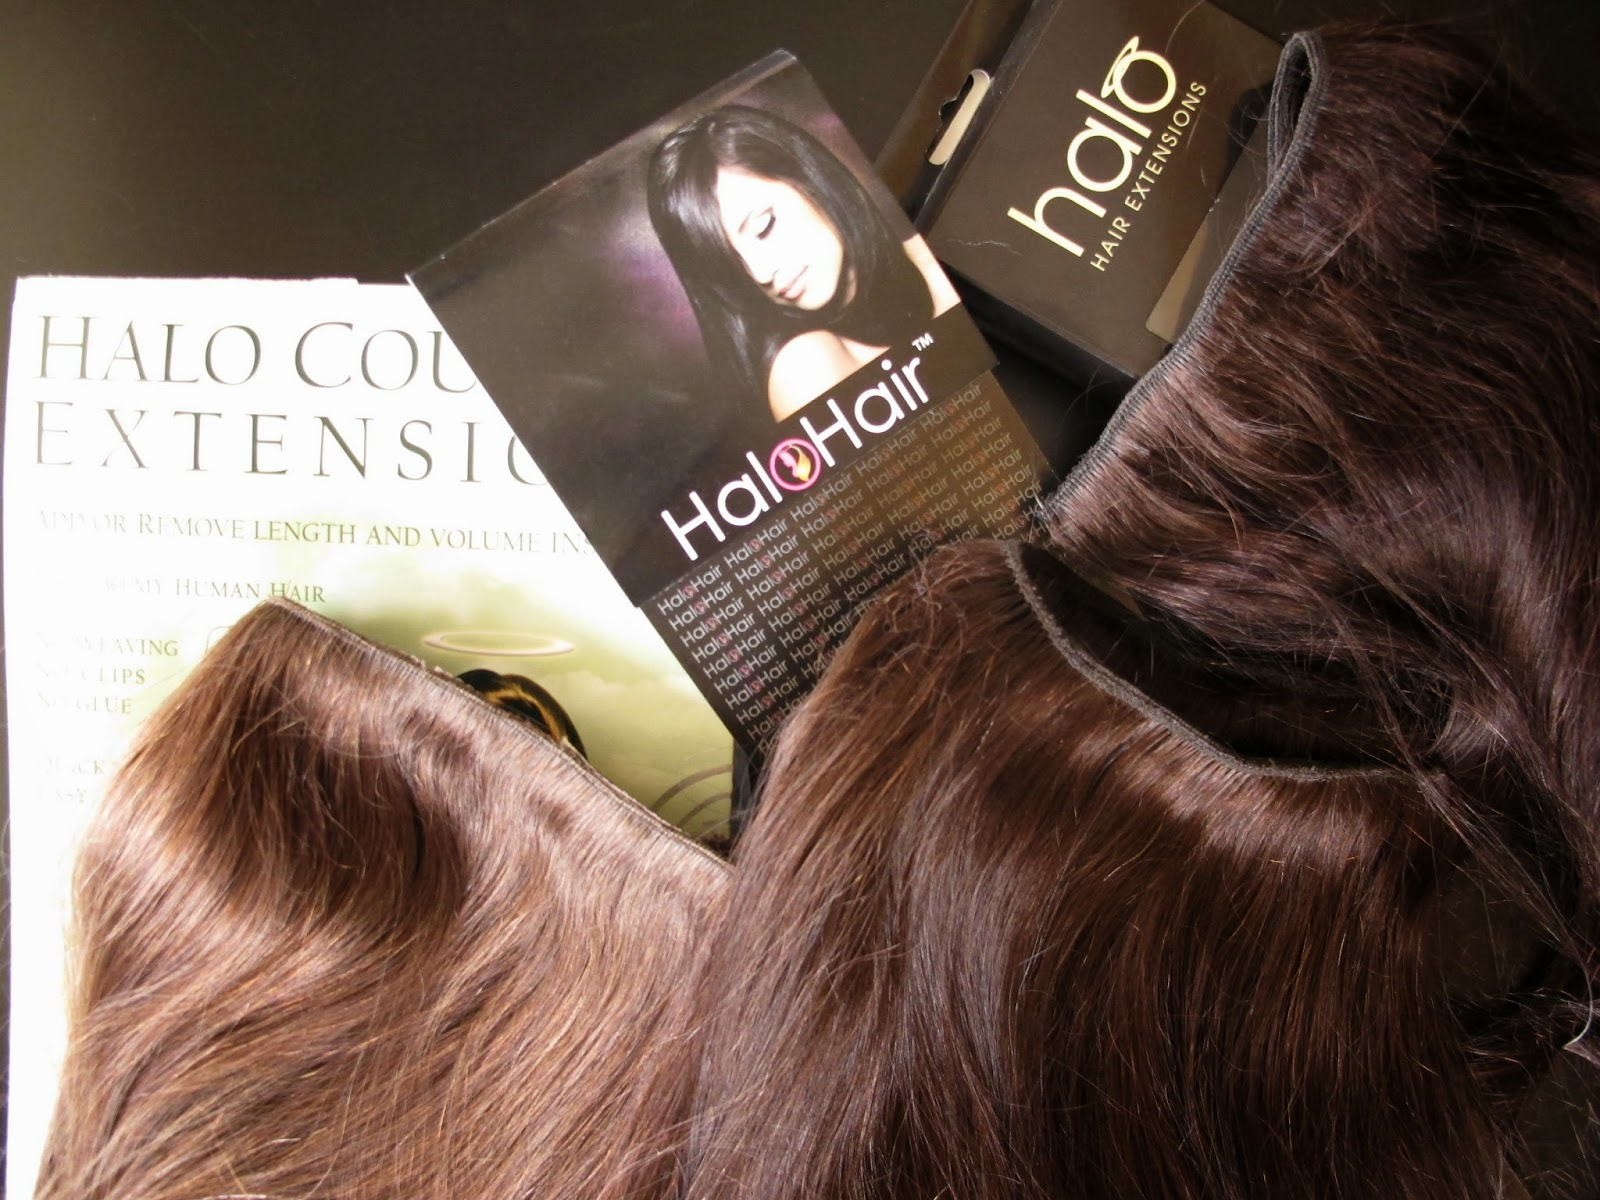 A Models Secrets Halo Hair Extensions Comparison Review Halo Uk